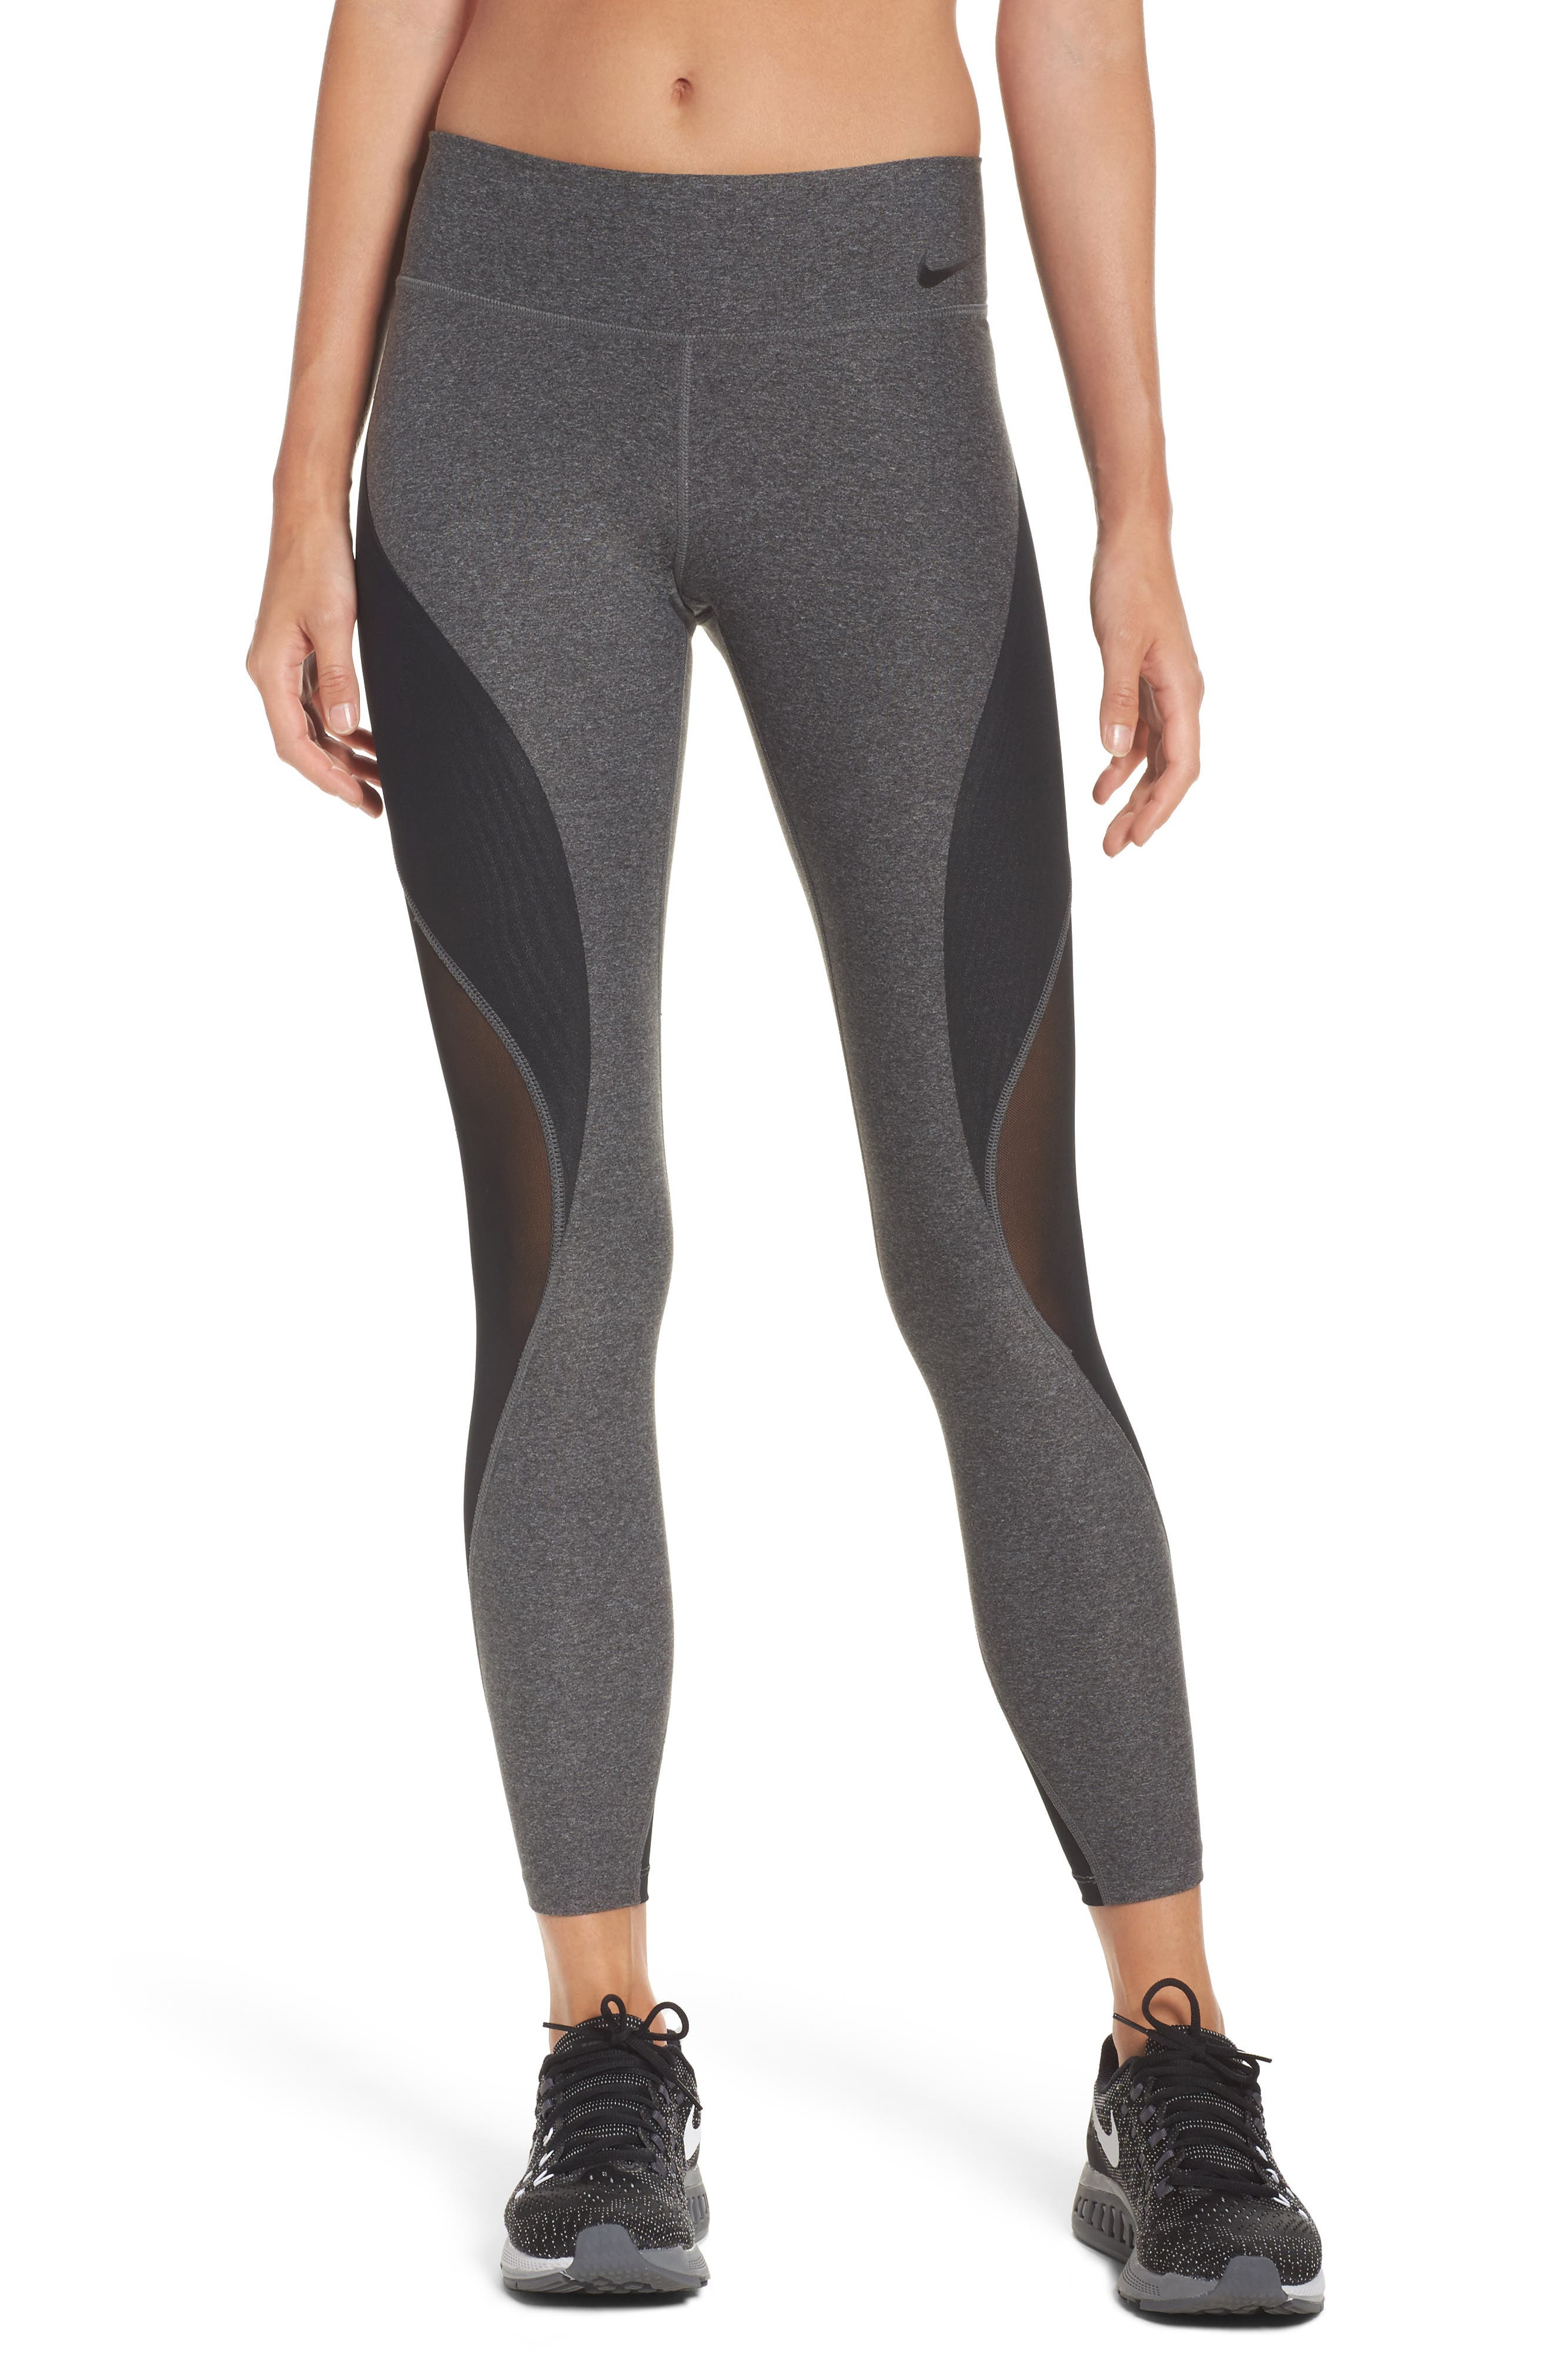 Power Legend Training Tights,                             Main thumbnail 1, color,                             071